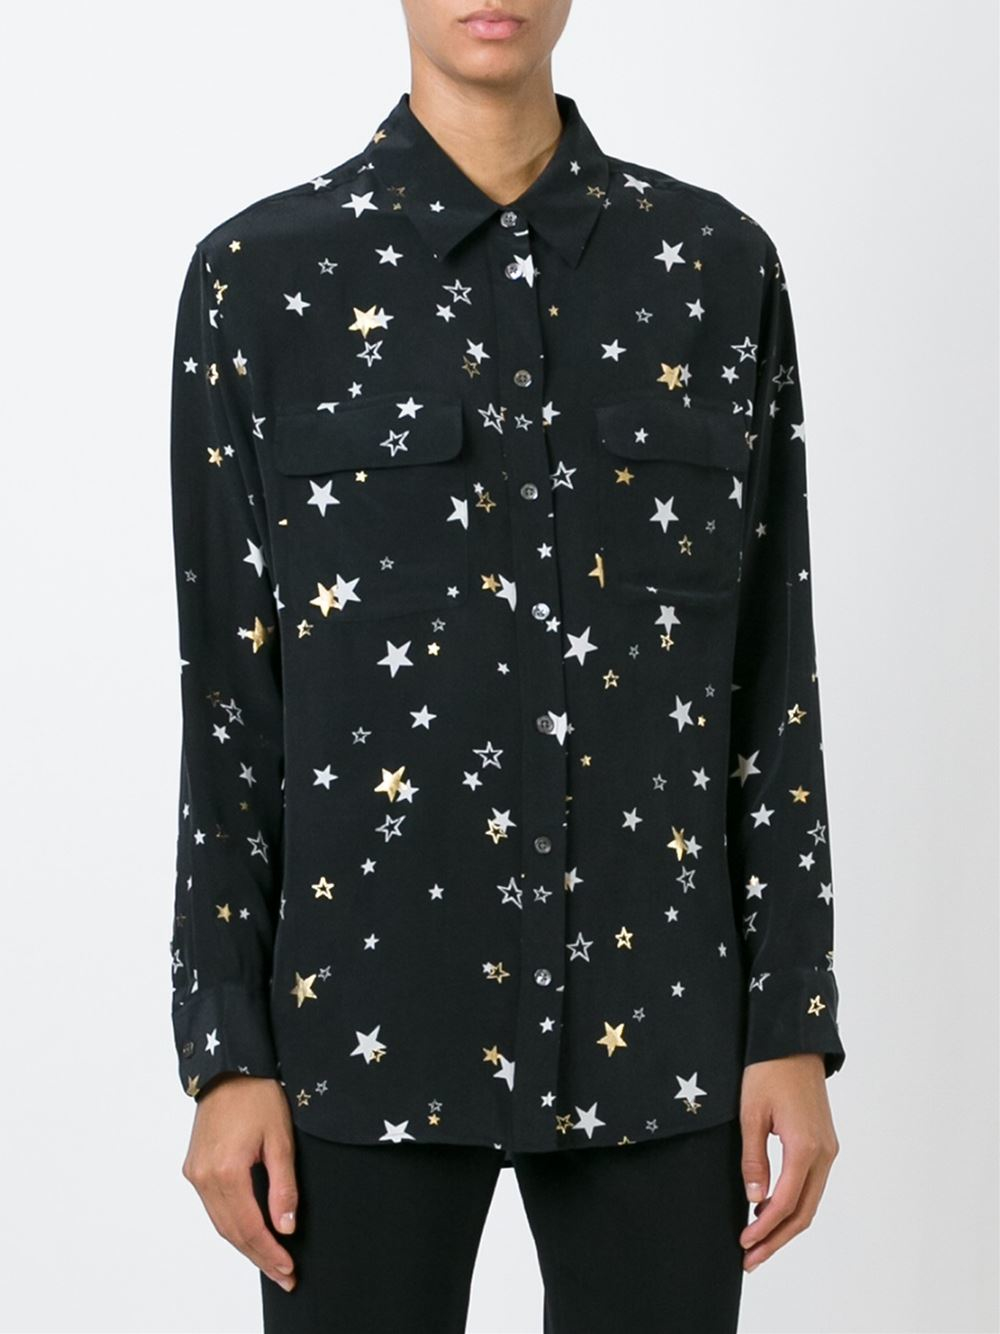 Equipment star print shirt in black lyst for Print a photo on at shirt